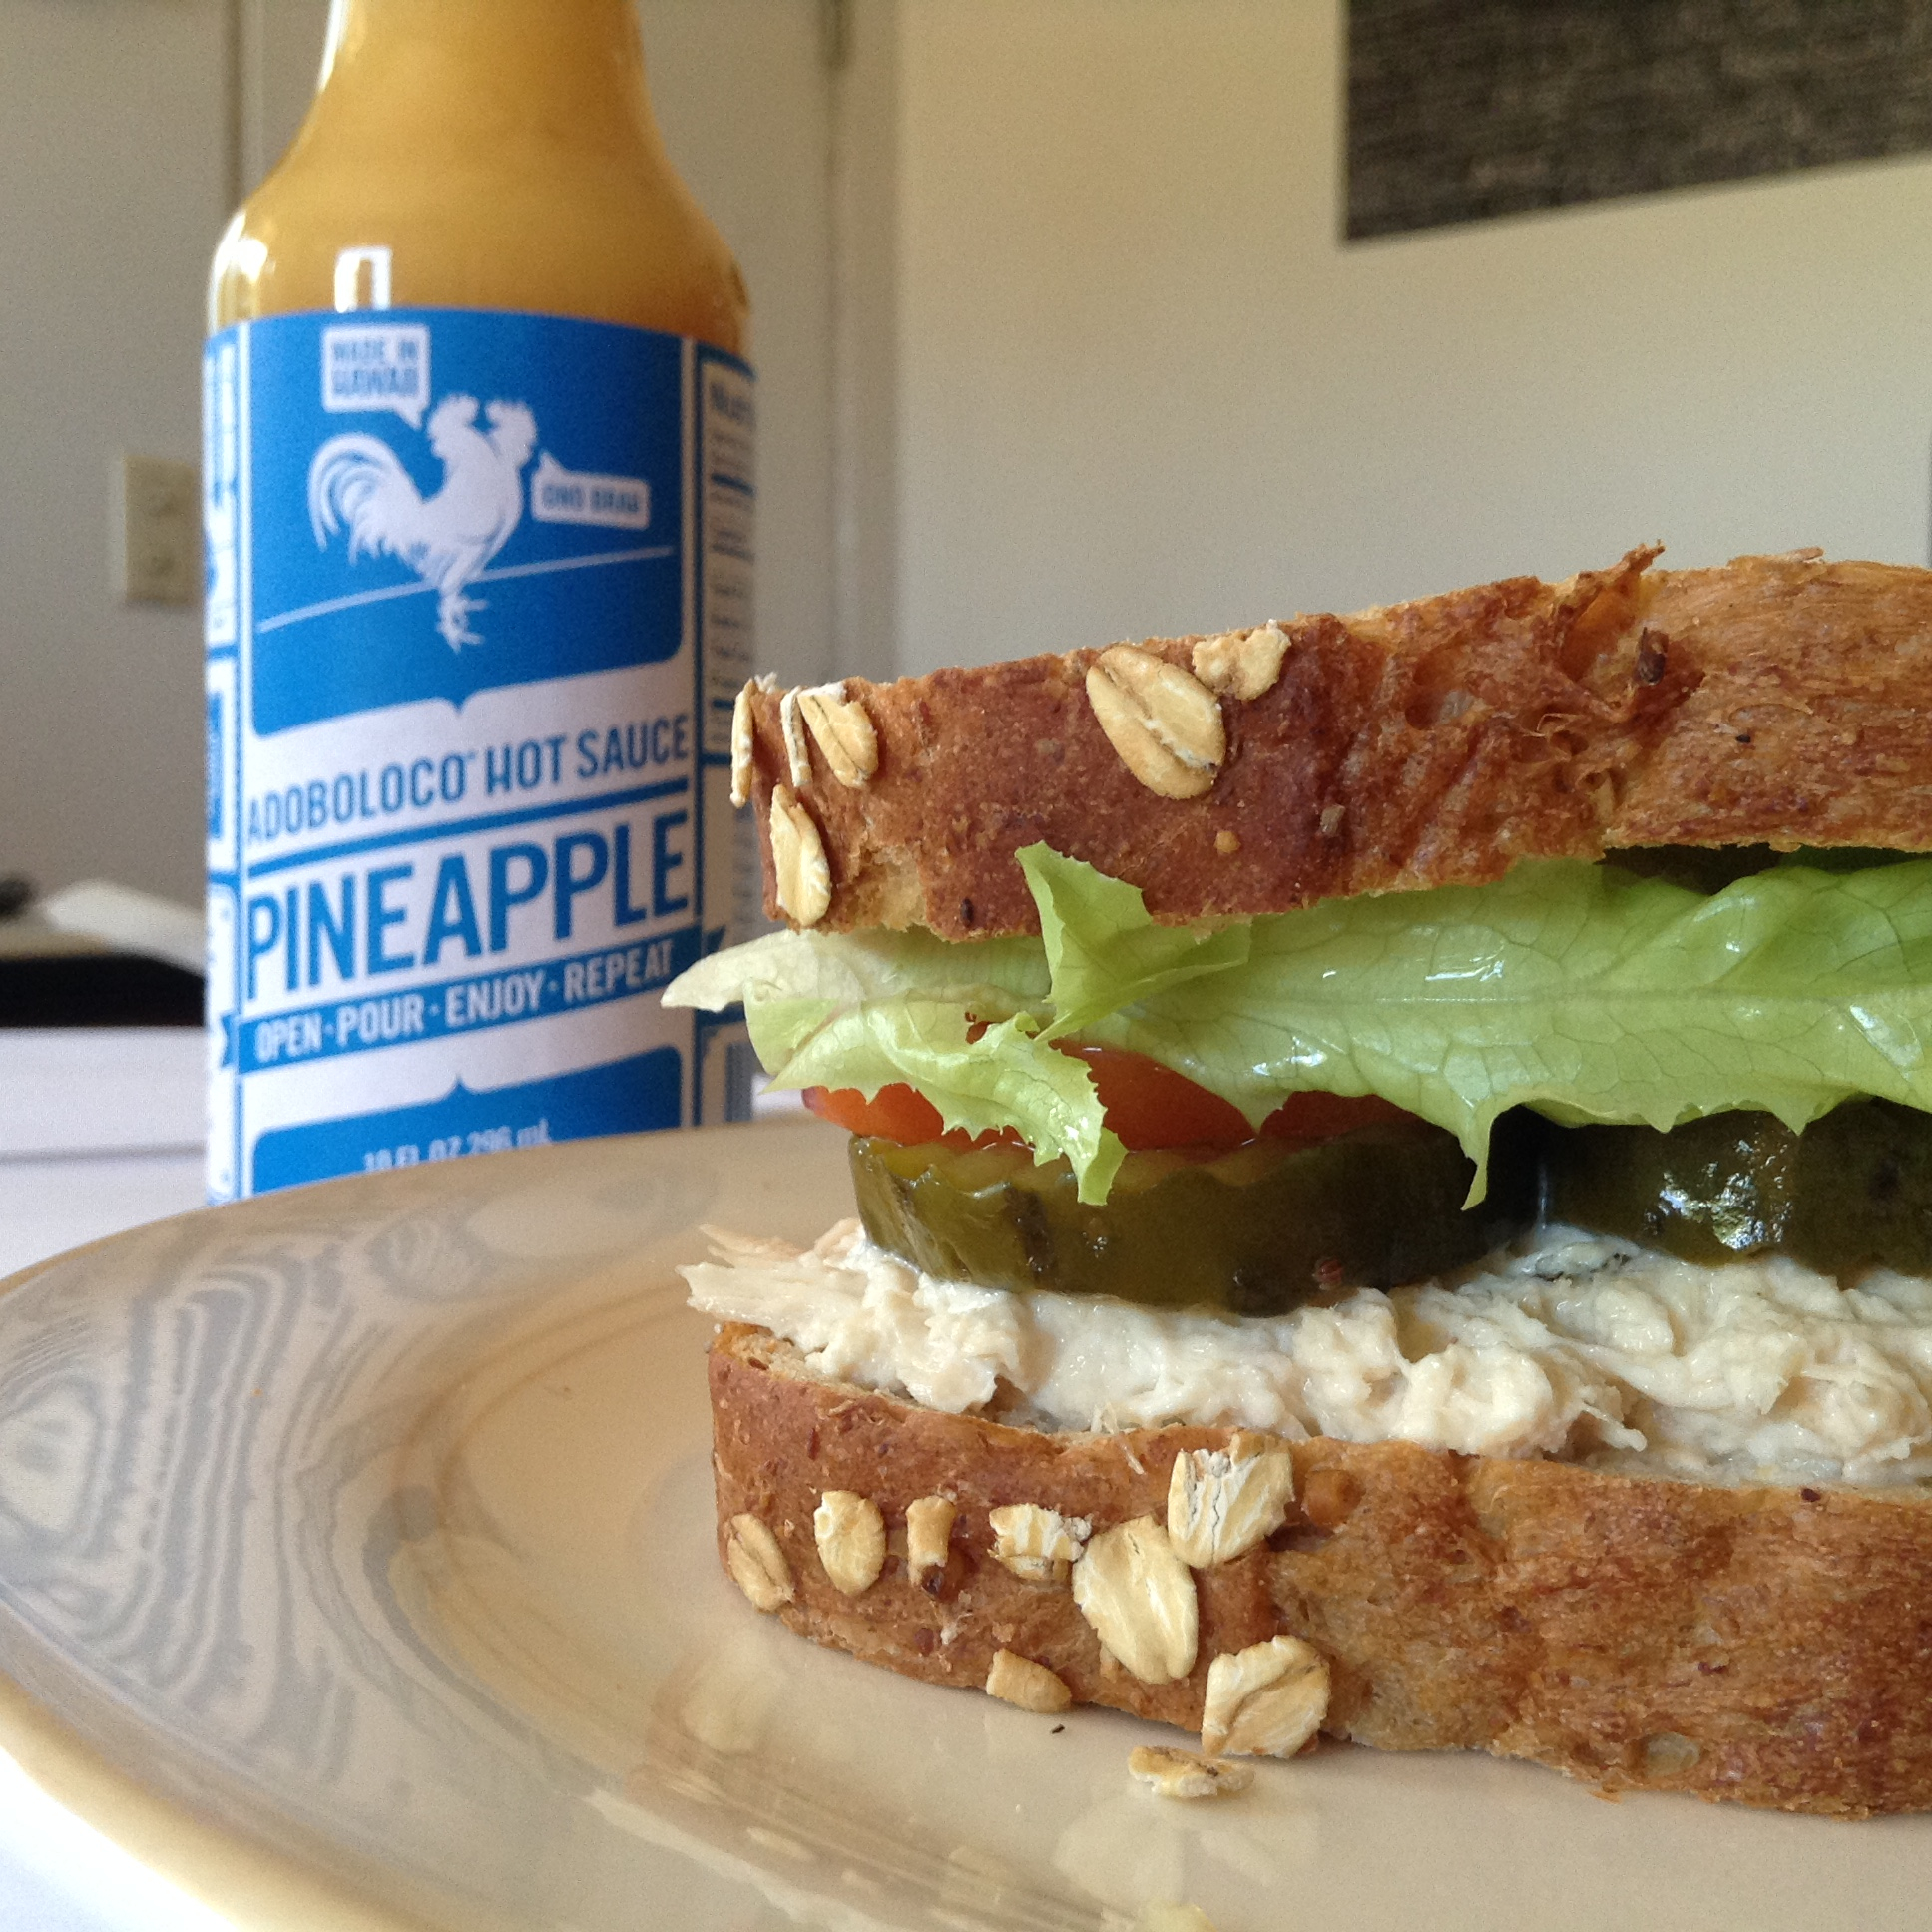 Tuna Fish Salad Sandwich with Adoboloco Pineapple Habanero Hot Sauce